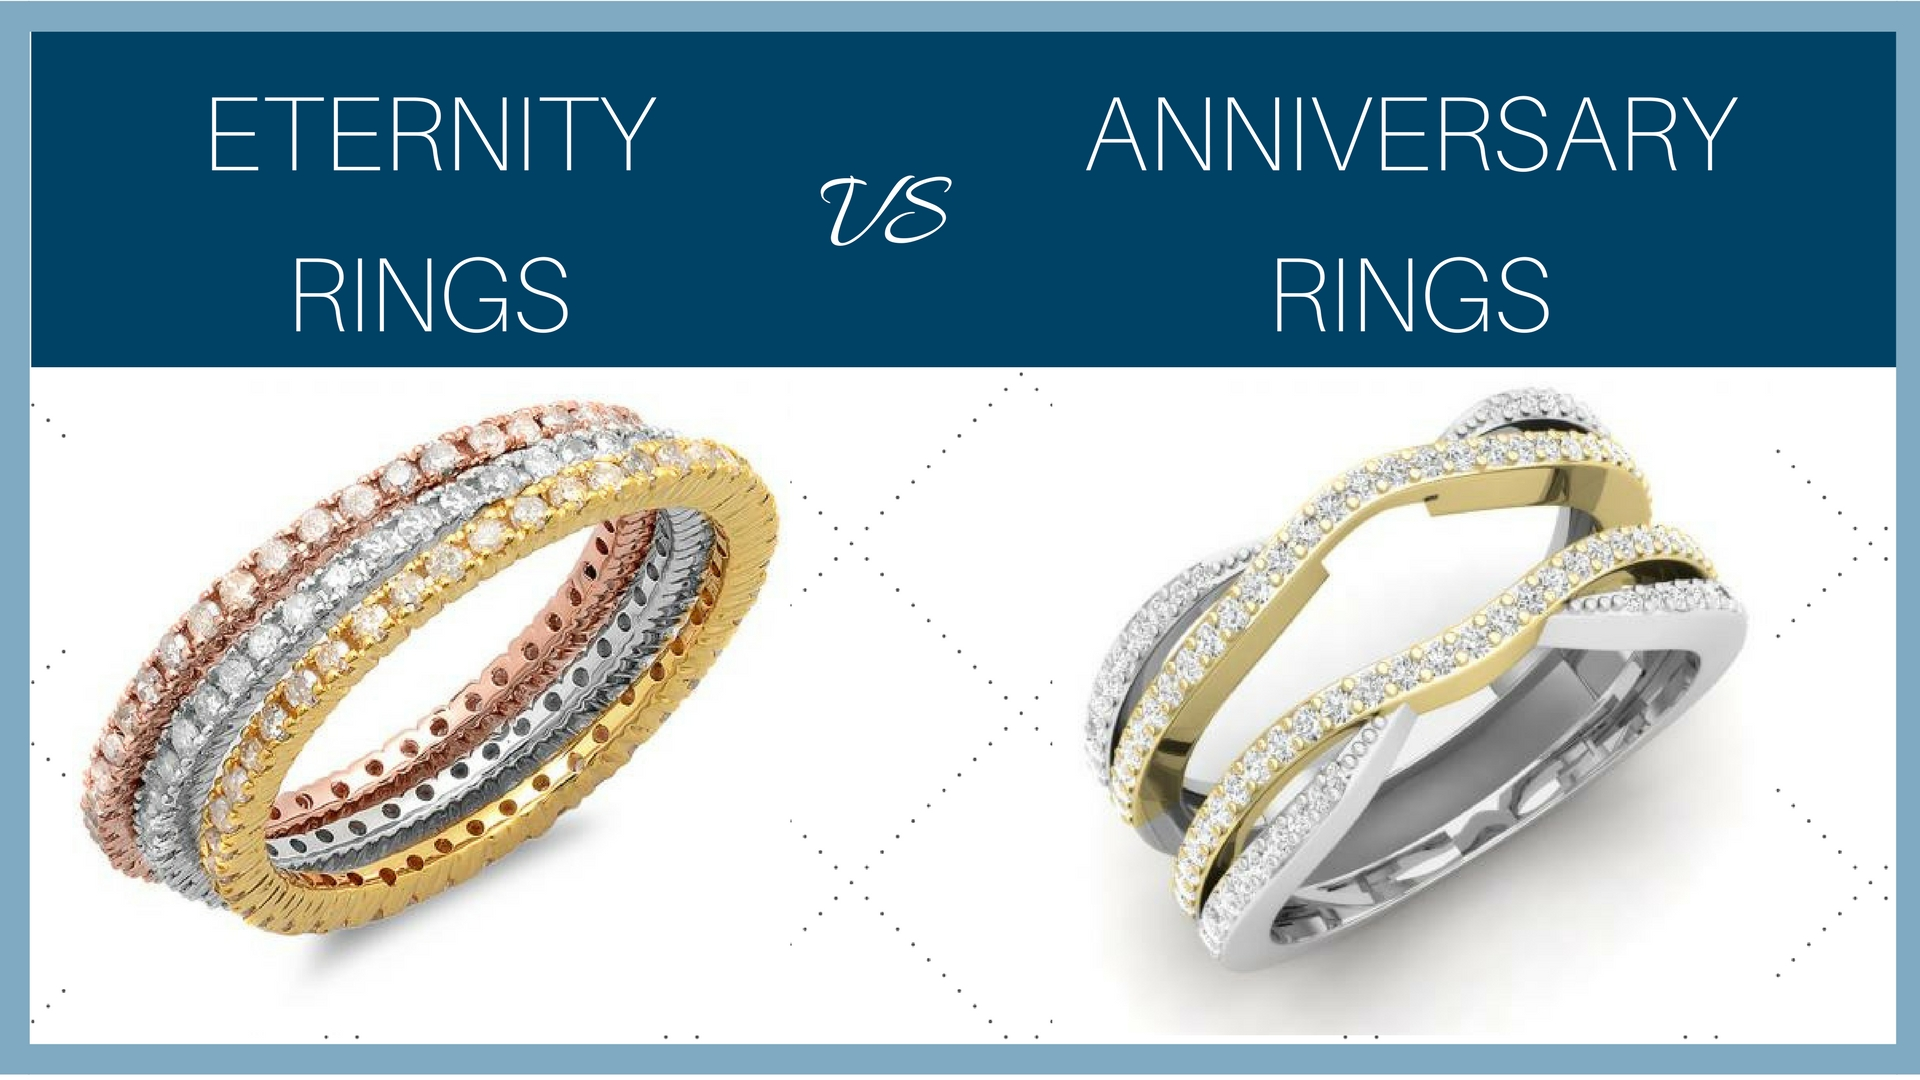 how engagement stone beautiful wedding stack tiffany anniversary to three her band for with aniversary rings ring